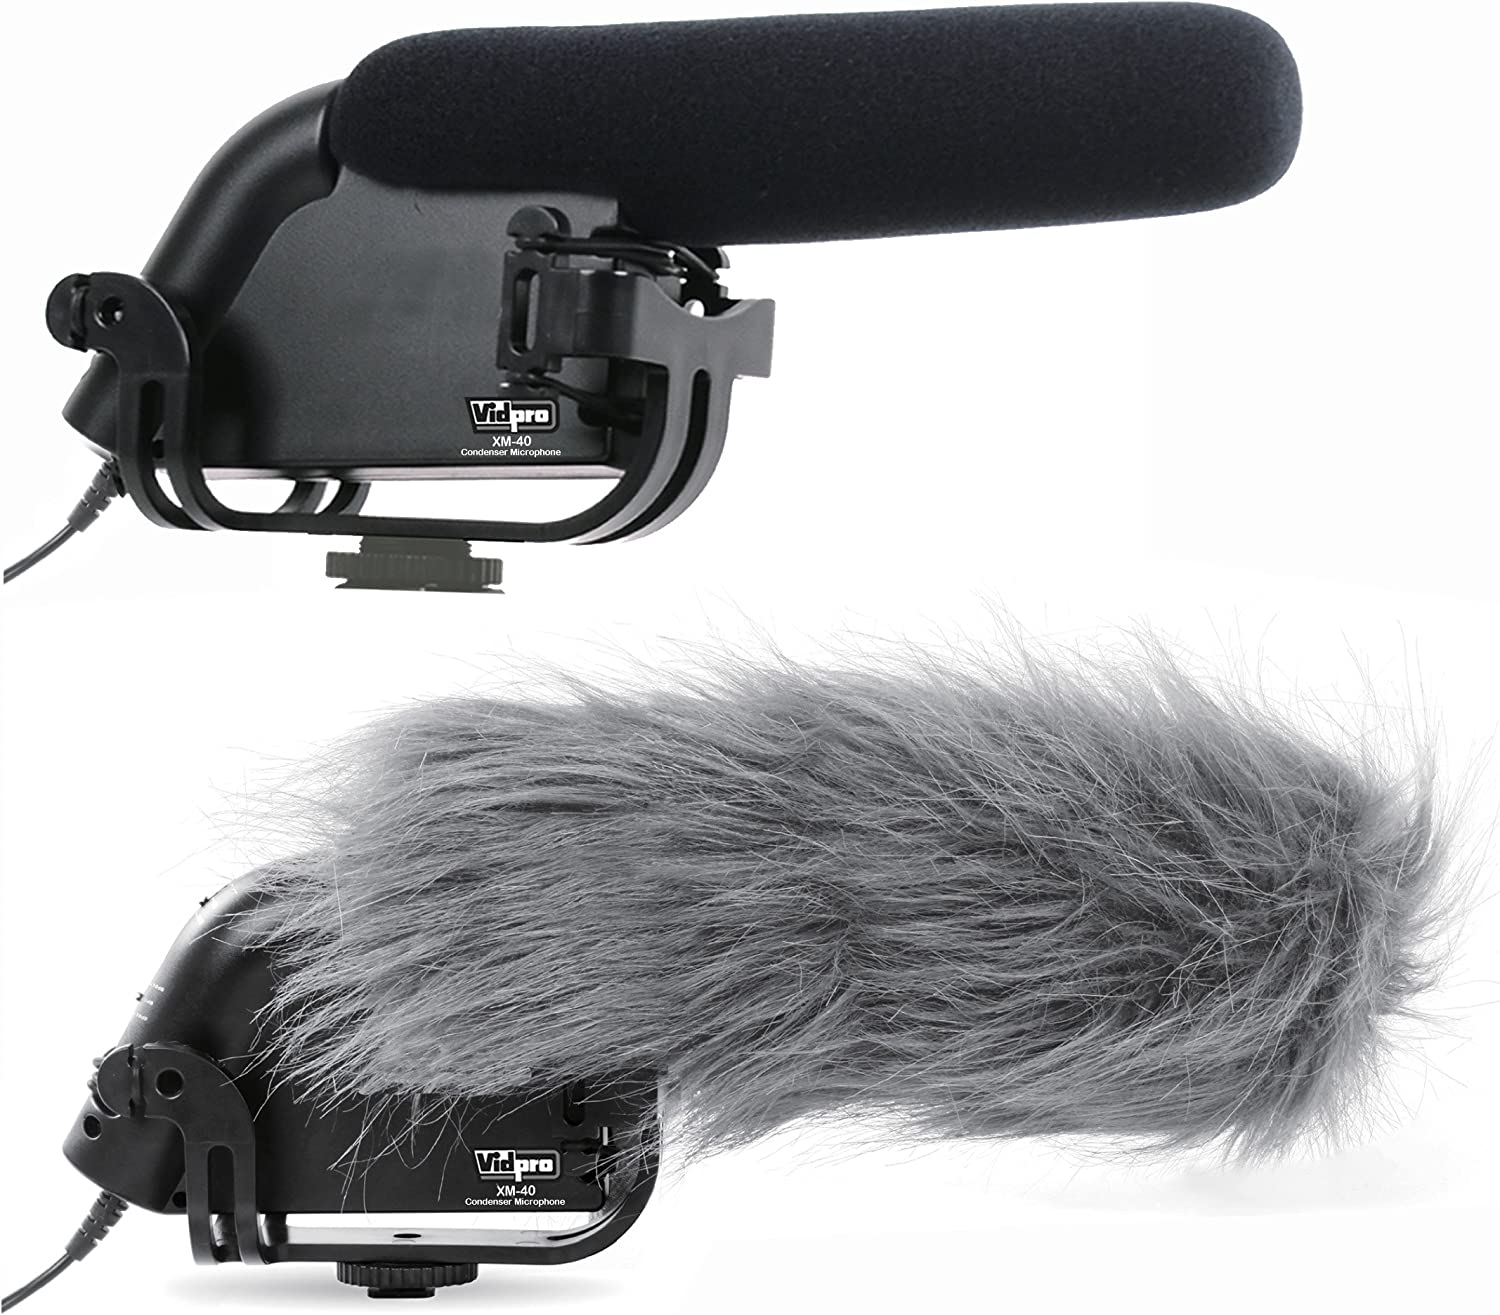 Nikon D610 Digital Camera External Microphone XM-40 Professional Video /& Broadcast Condenser Microphone